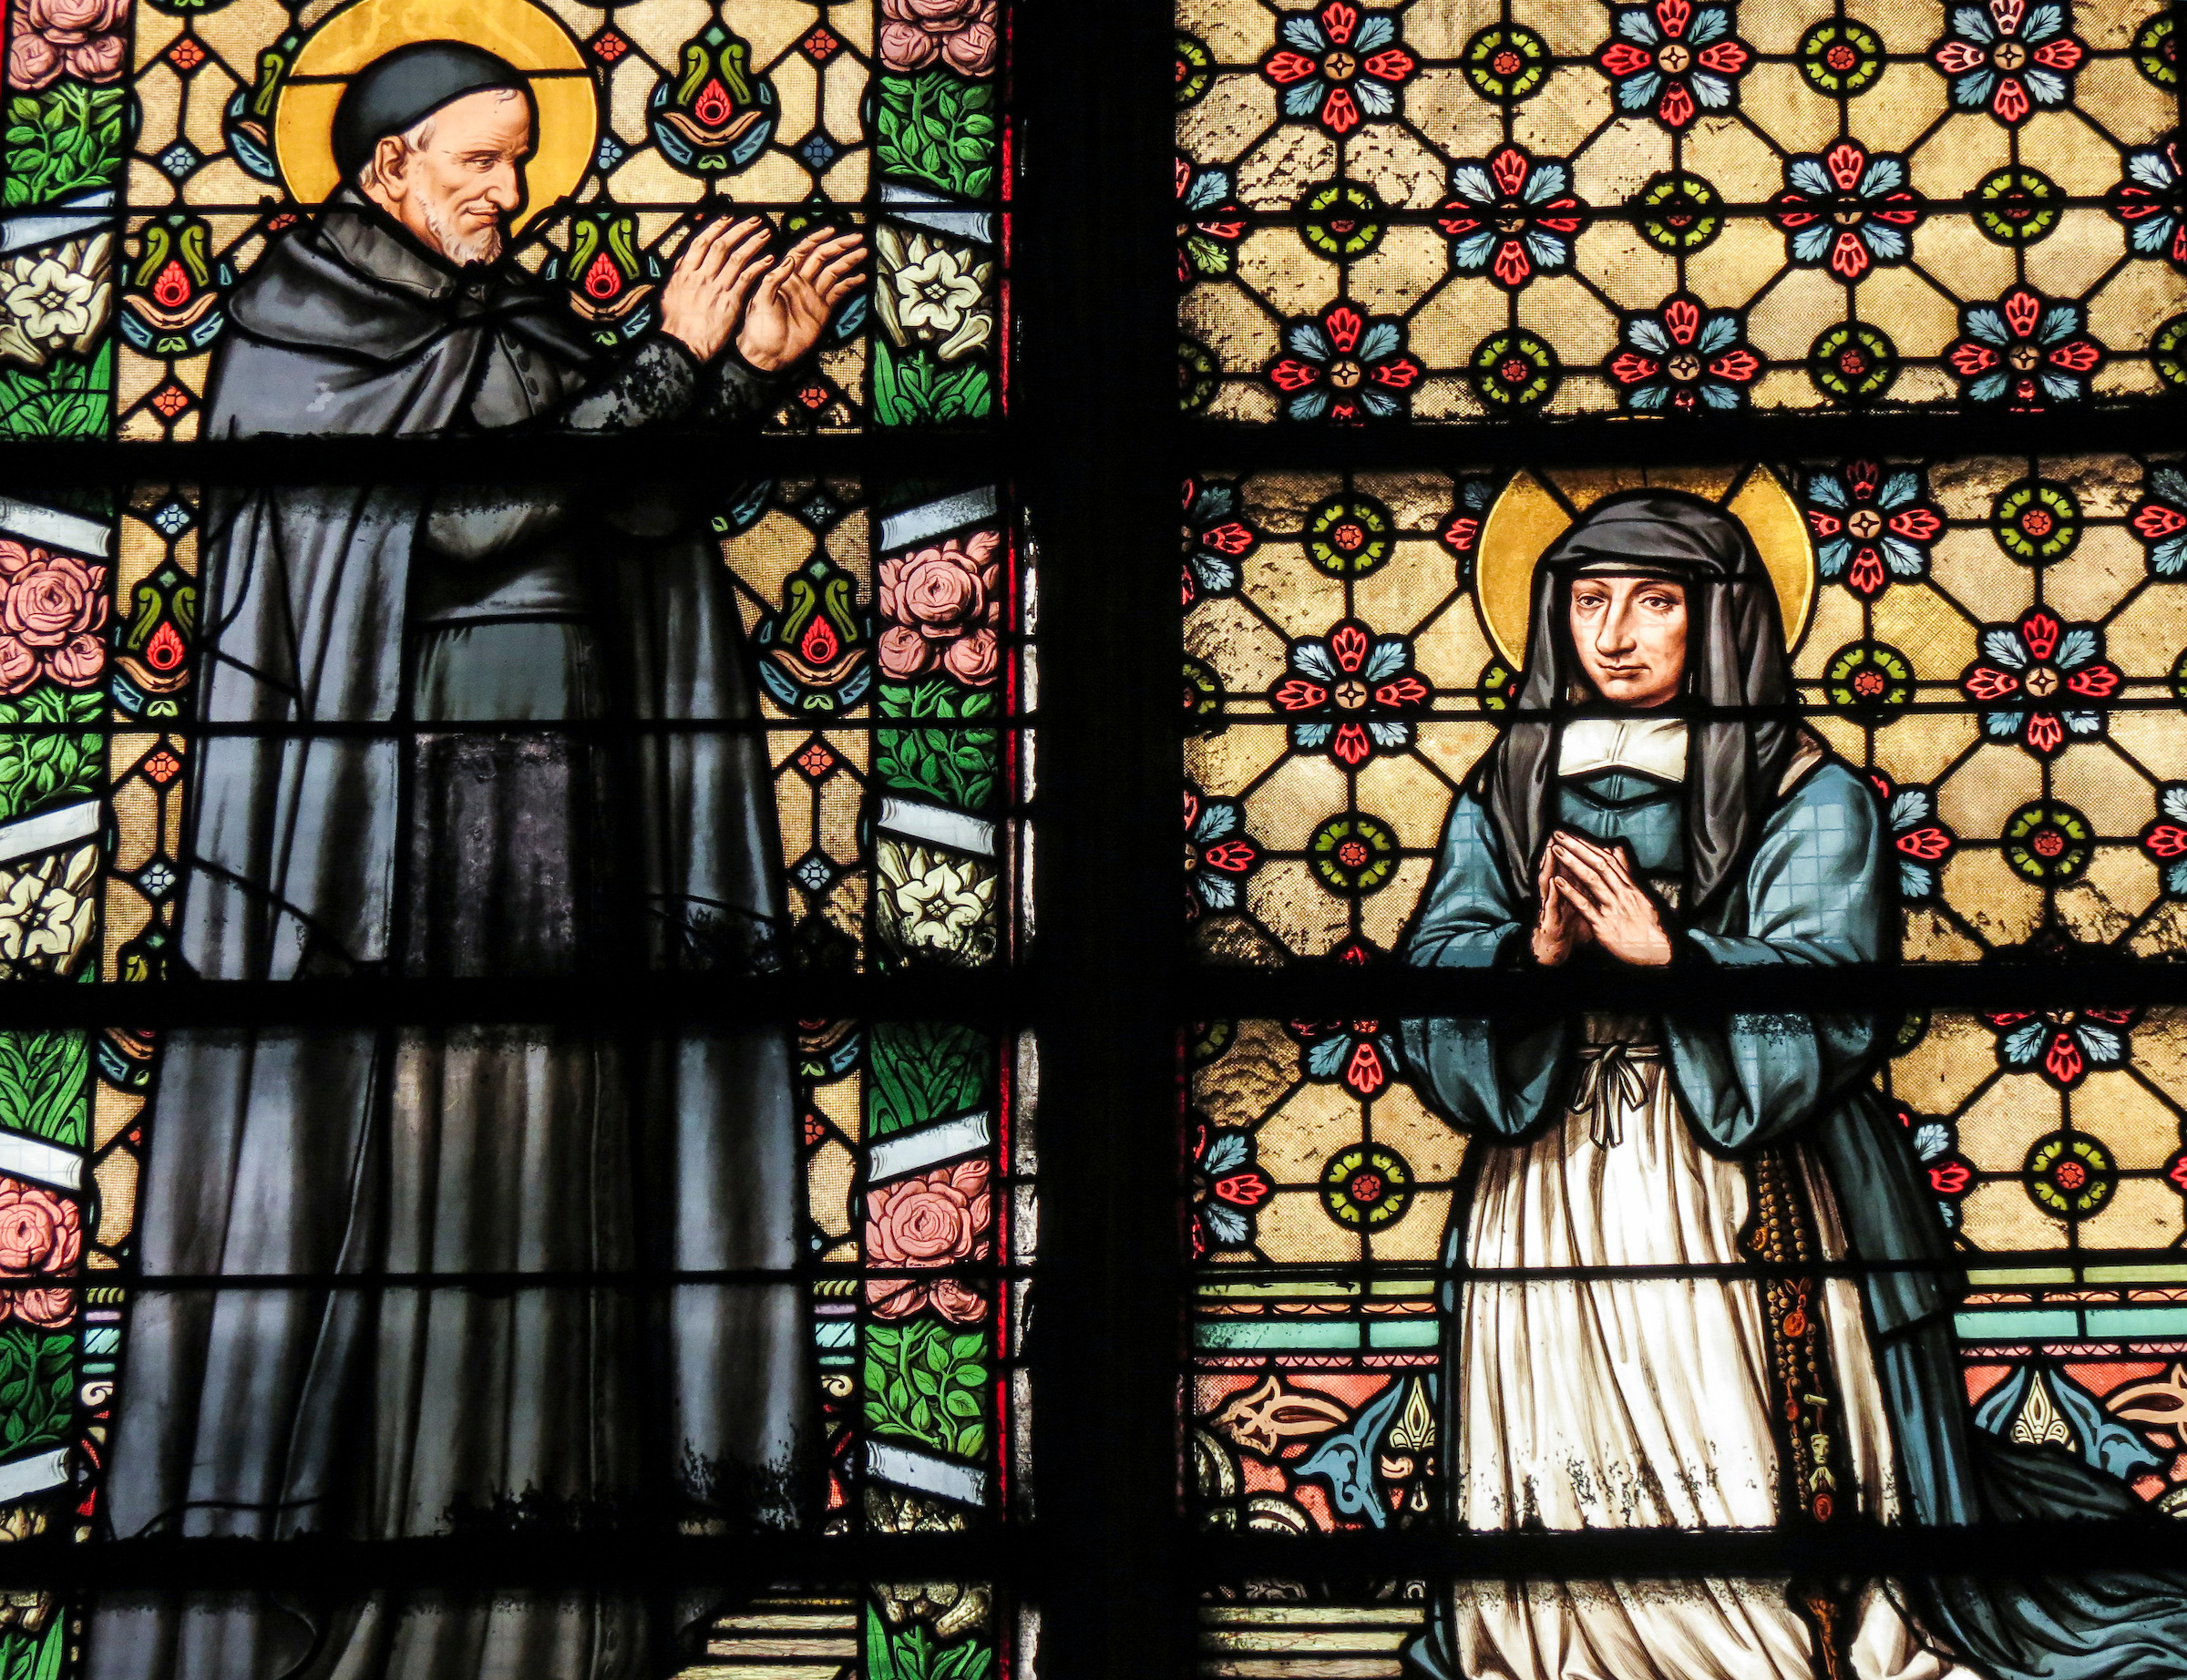 Saint Vincent de Paul blessing the first Sisters of Charity, including Saint Louise de Marillac, shown in a stained-glass window by Pierre Fritel inside the Church of Saint-Laurent in Paris.Faculty and staff who participate in the Vincentian Mission Institute visit the site, which is home to many artifacts highlighting the life of Saint Vincent de Paul. (DePaul University/Jamie Moncrief)